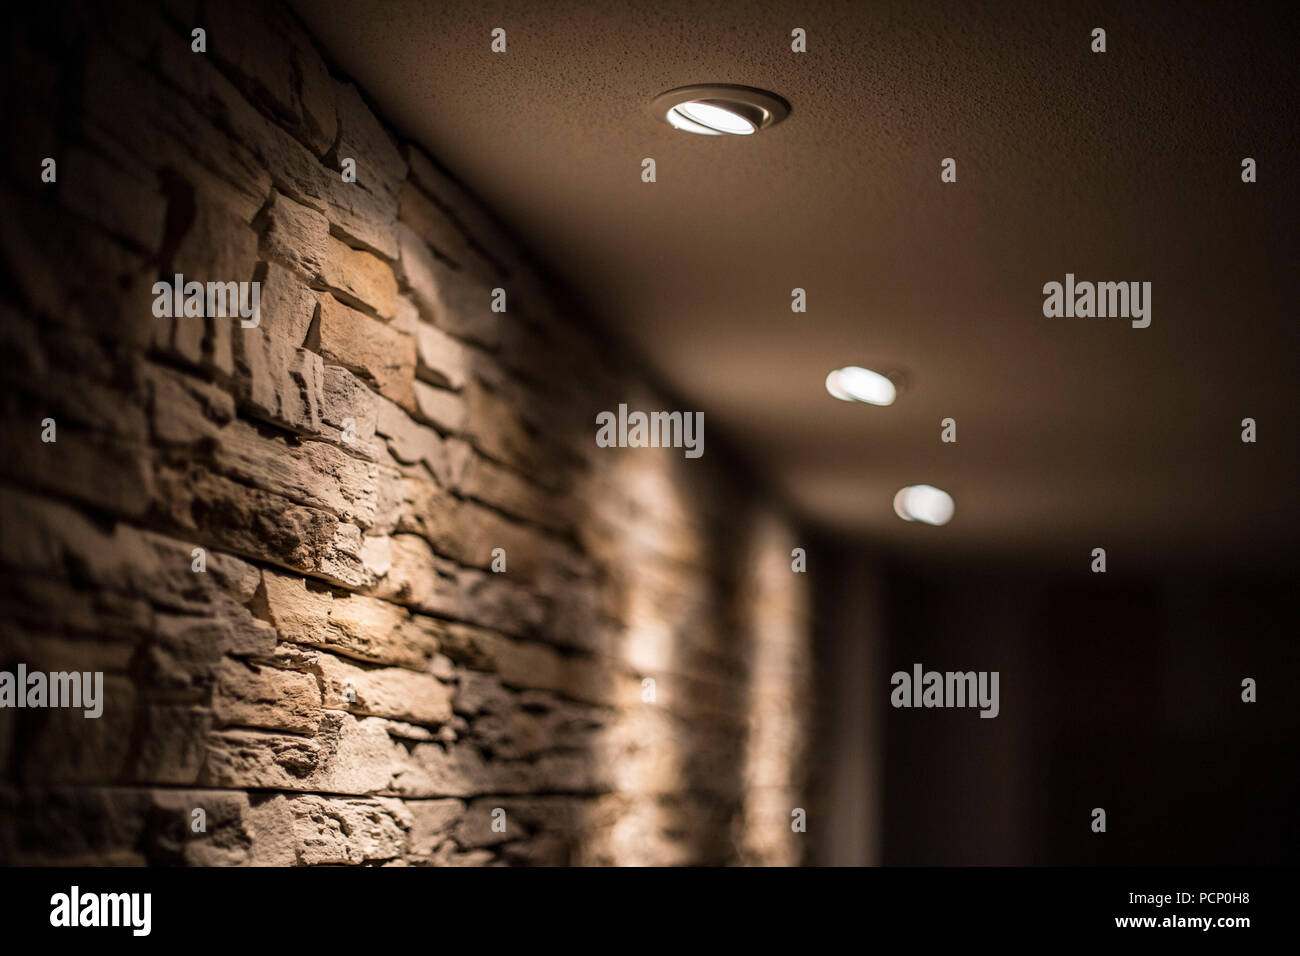 Integrated ceiling spots halogen radiating on a stone wall - Stock Image